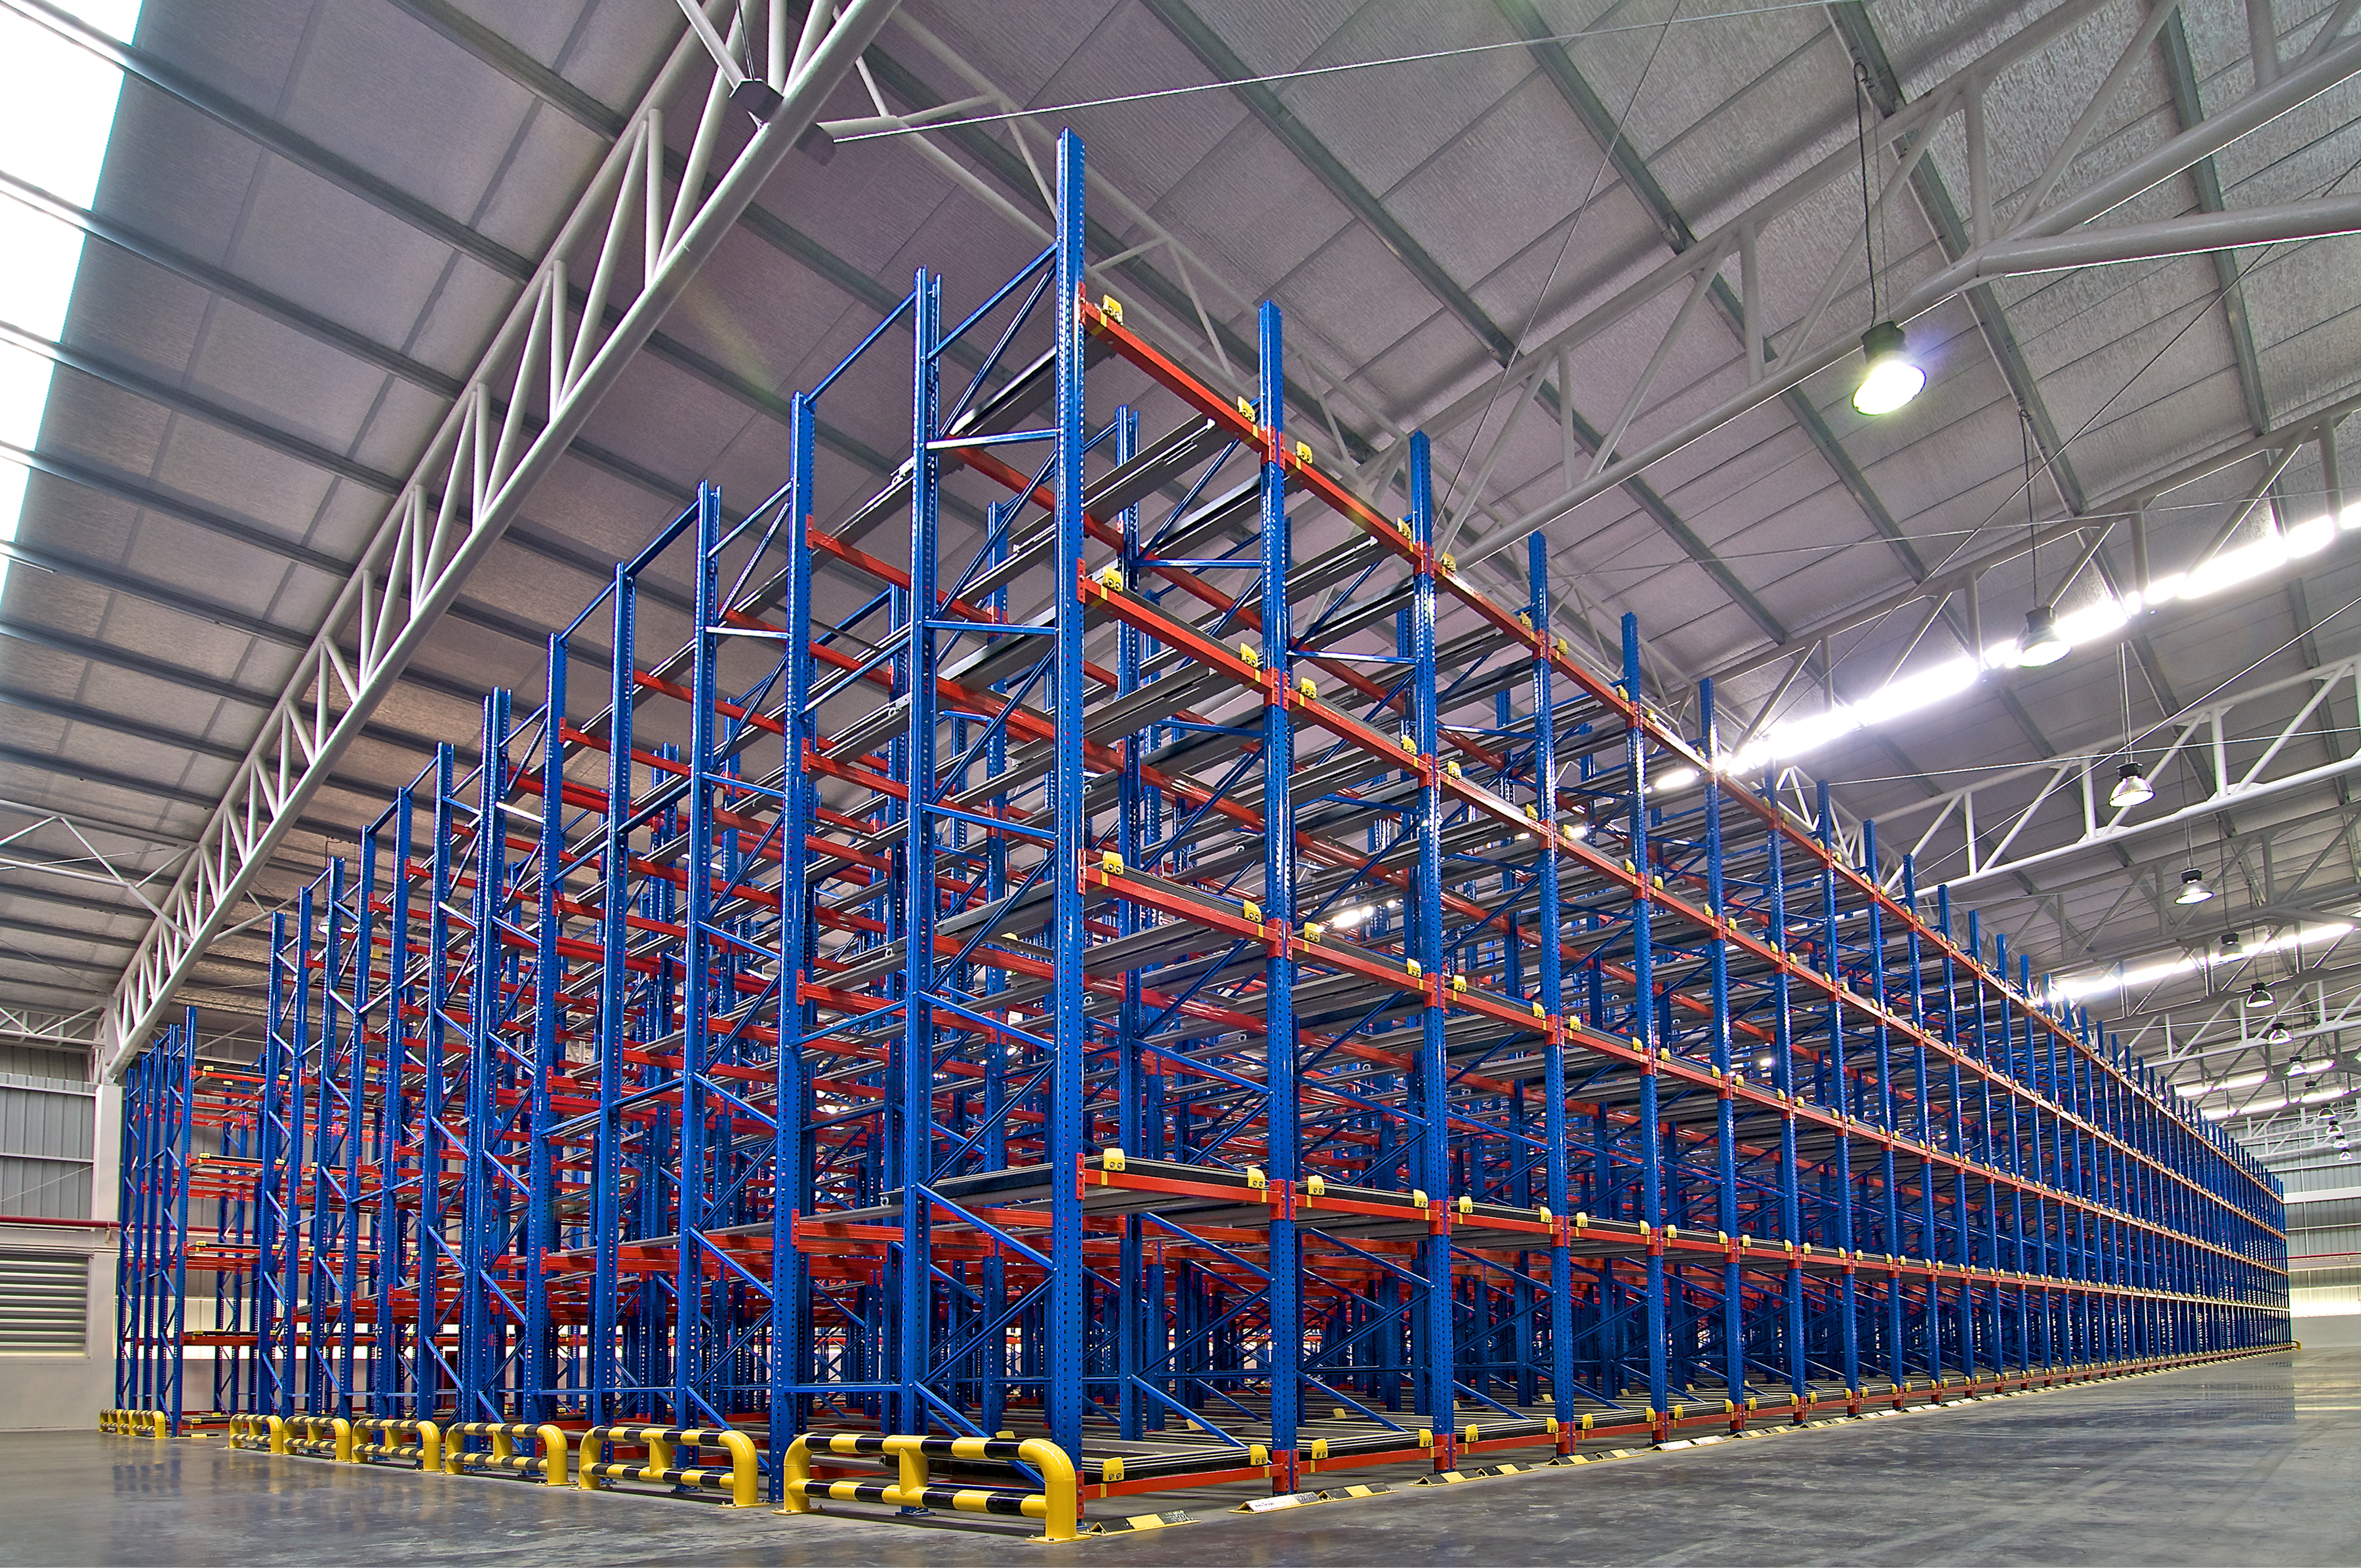 industrial-shelving-metal-pallet-racking-storage-PFZQF63